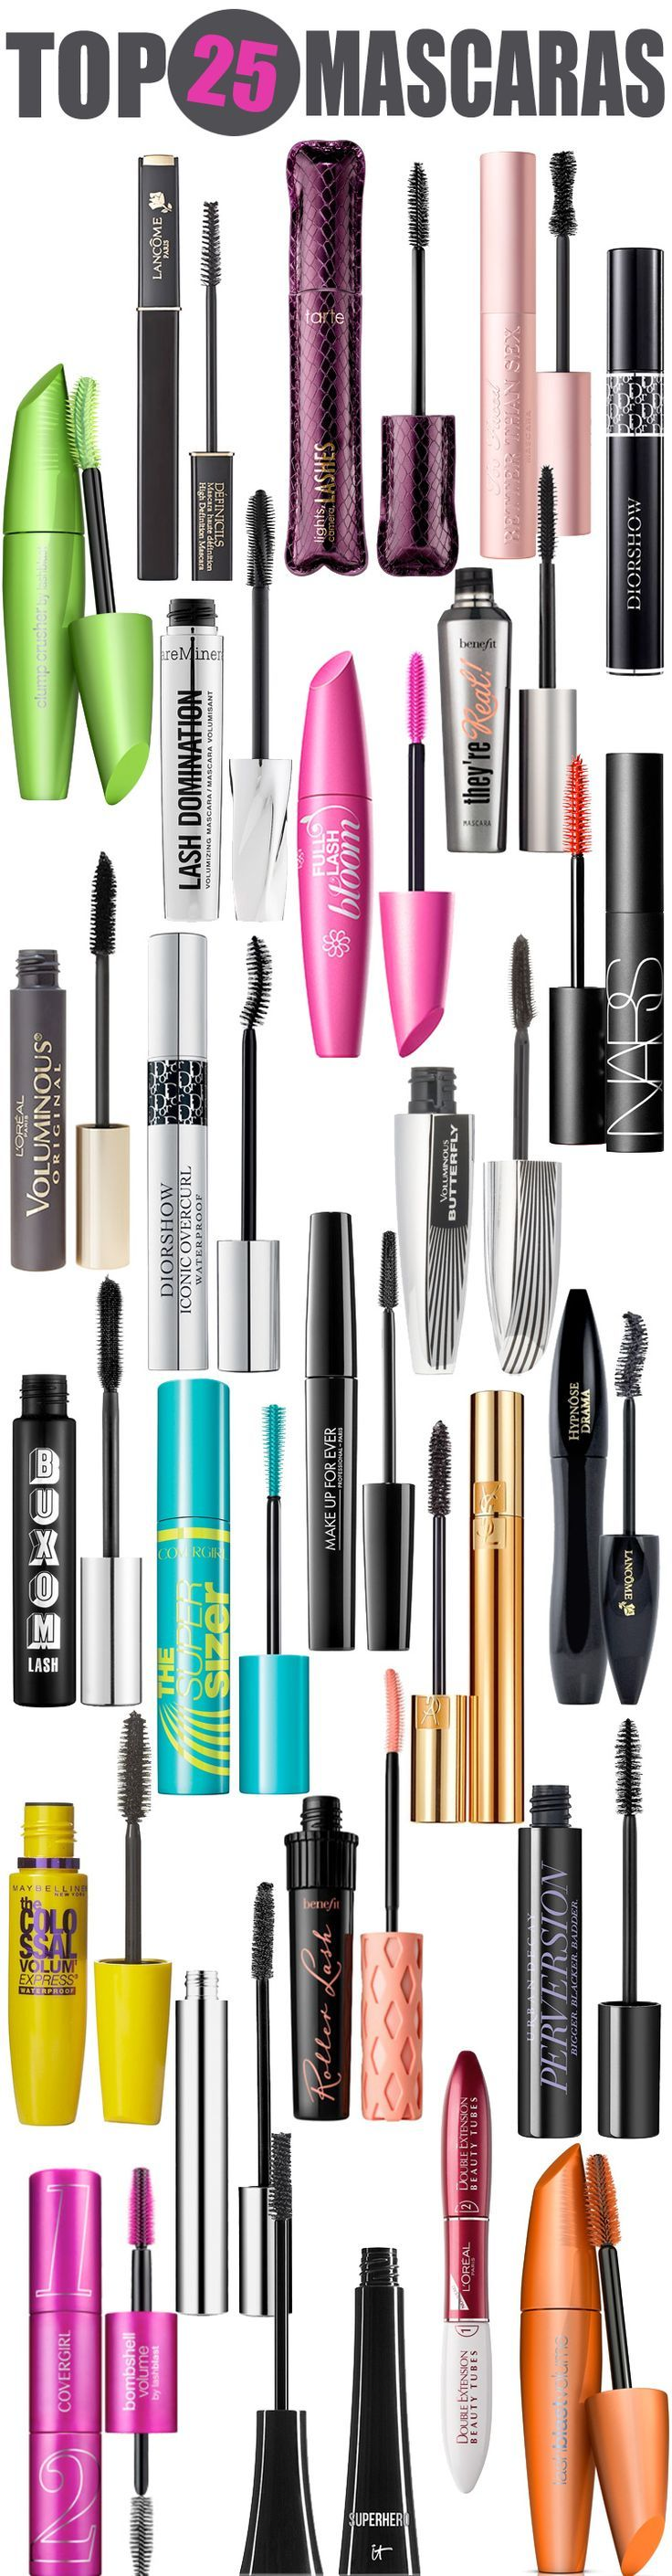 Top 25 Mascaras  From drugstore mascara to department store mascara, this list has the top mascaras to keep in your makeup bag!